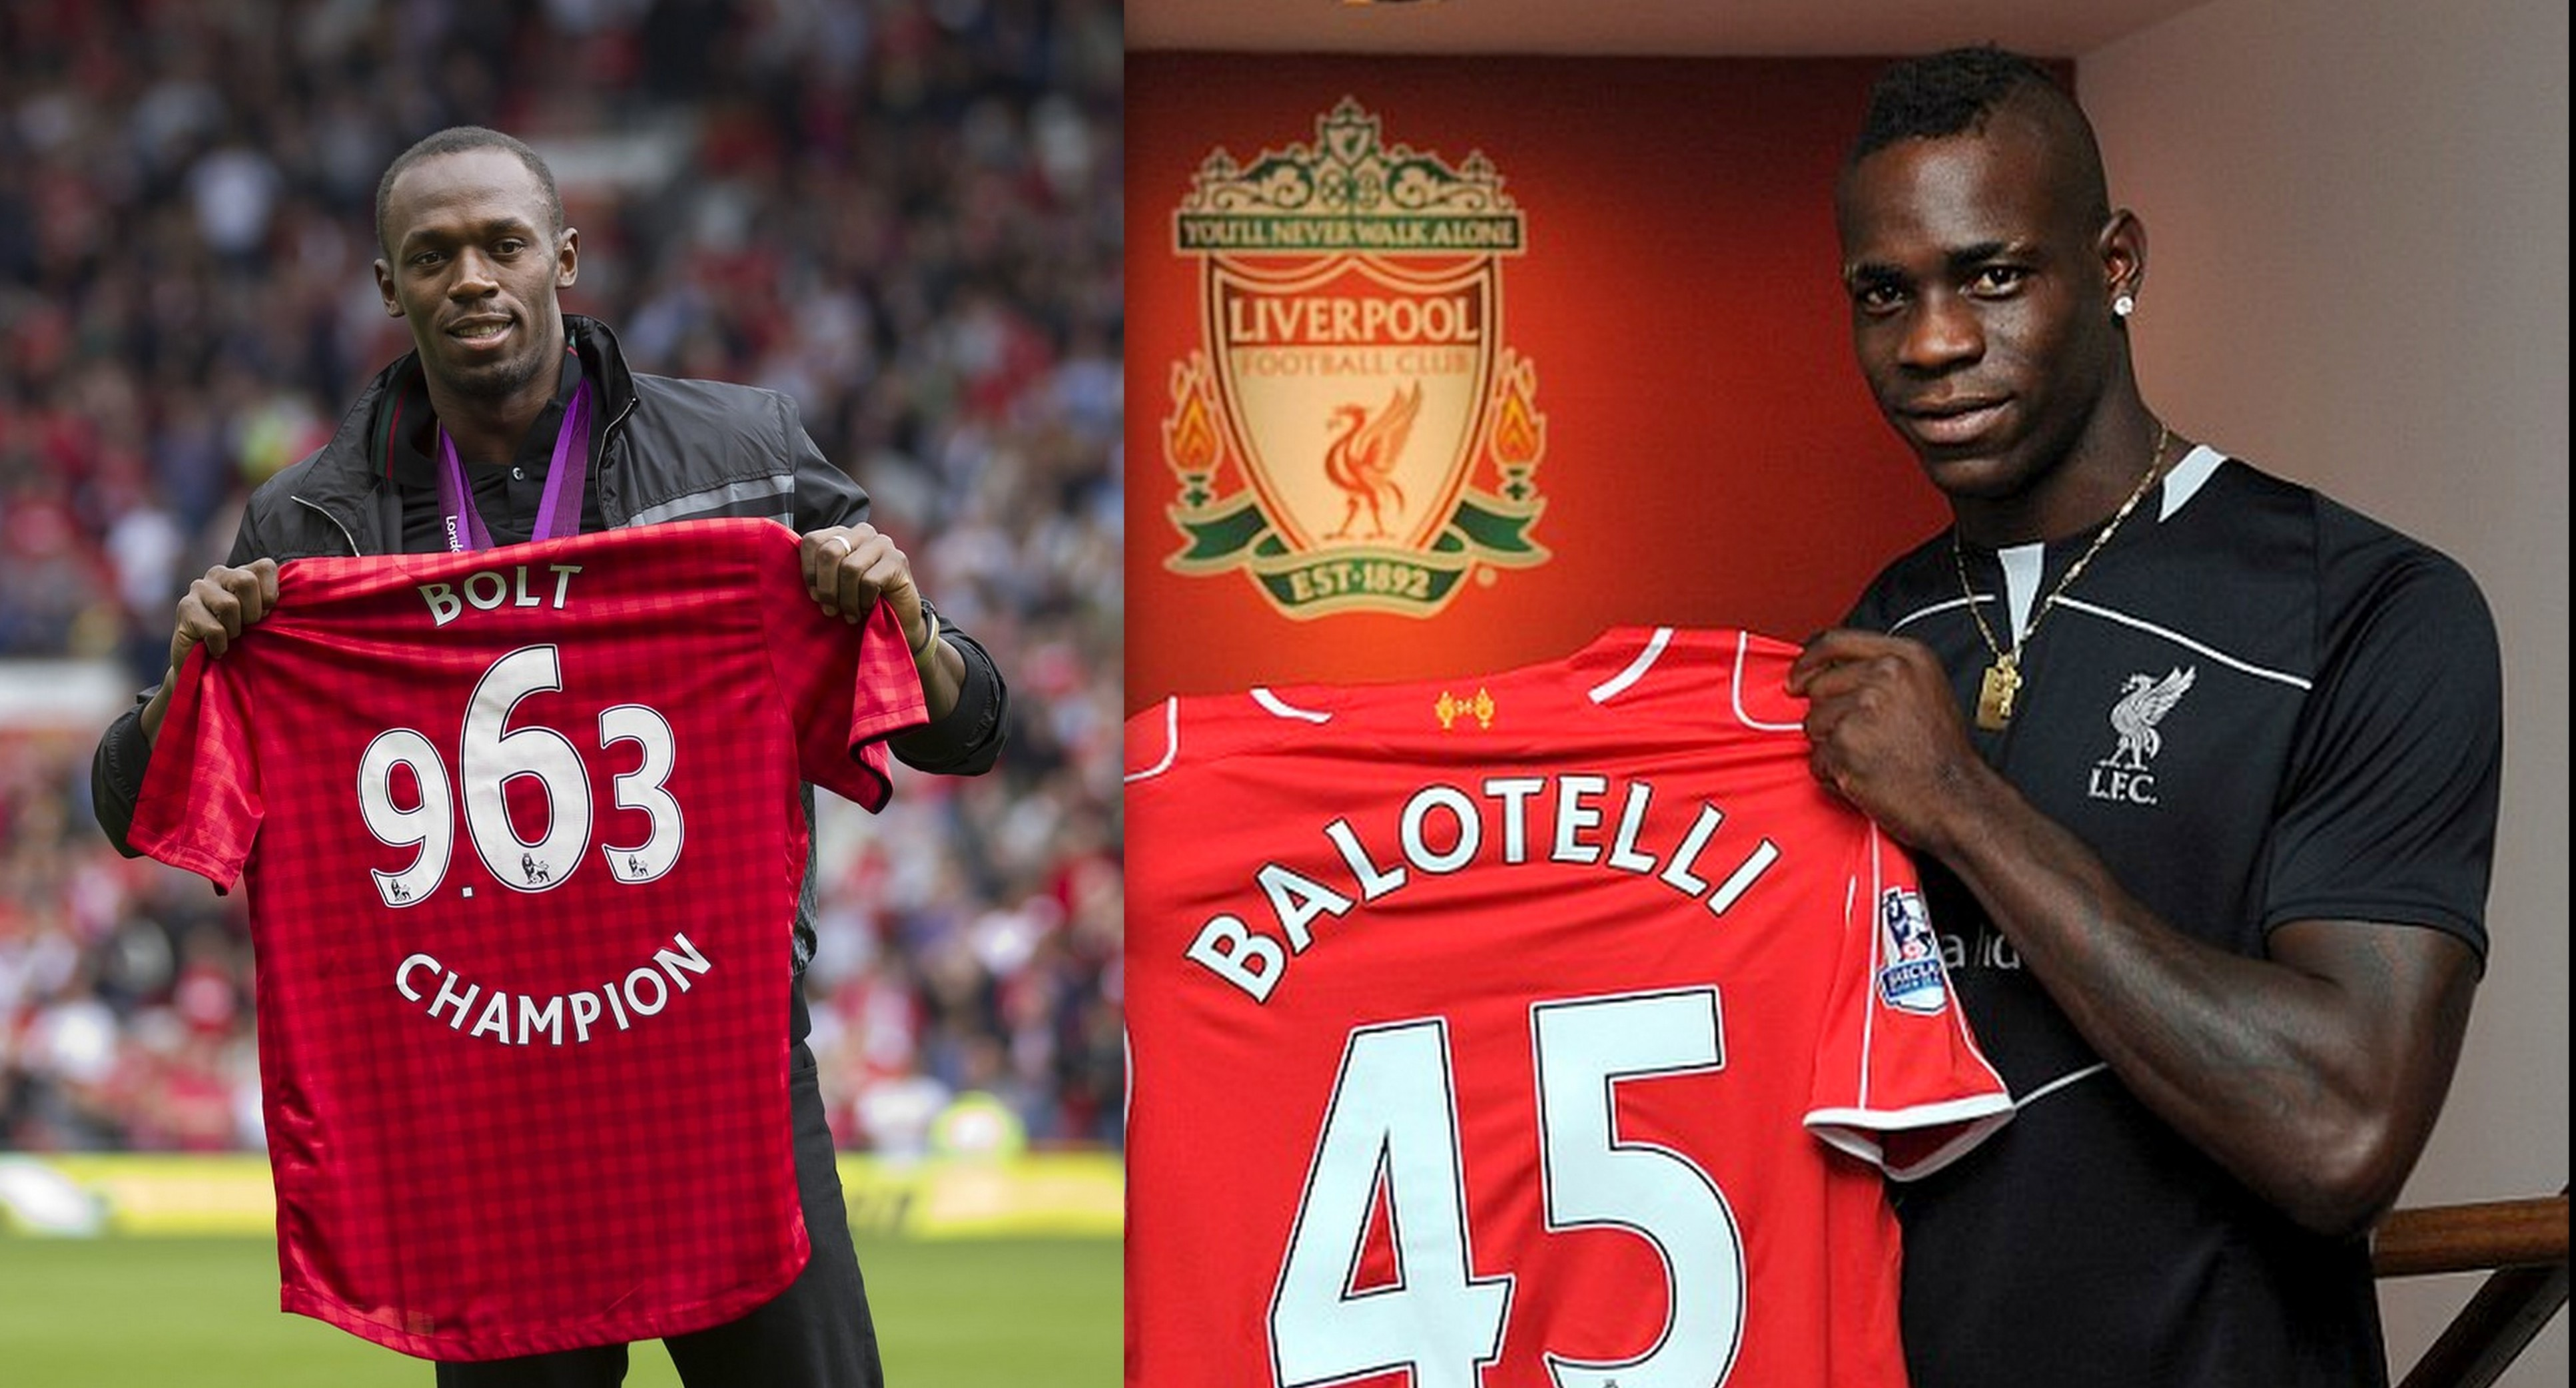 Manchester United fan Usain Bolt urged Mario Balotelli to sign for Liverpool